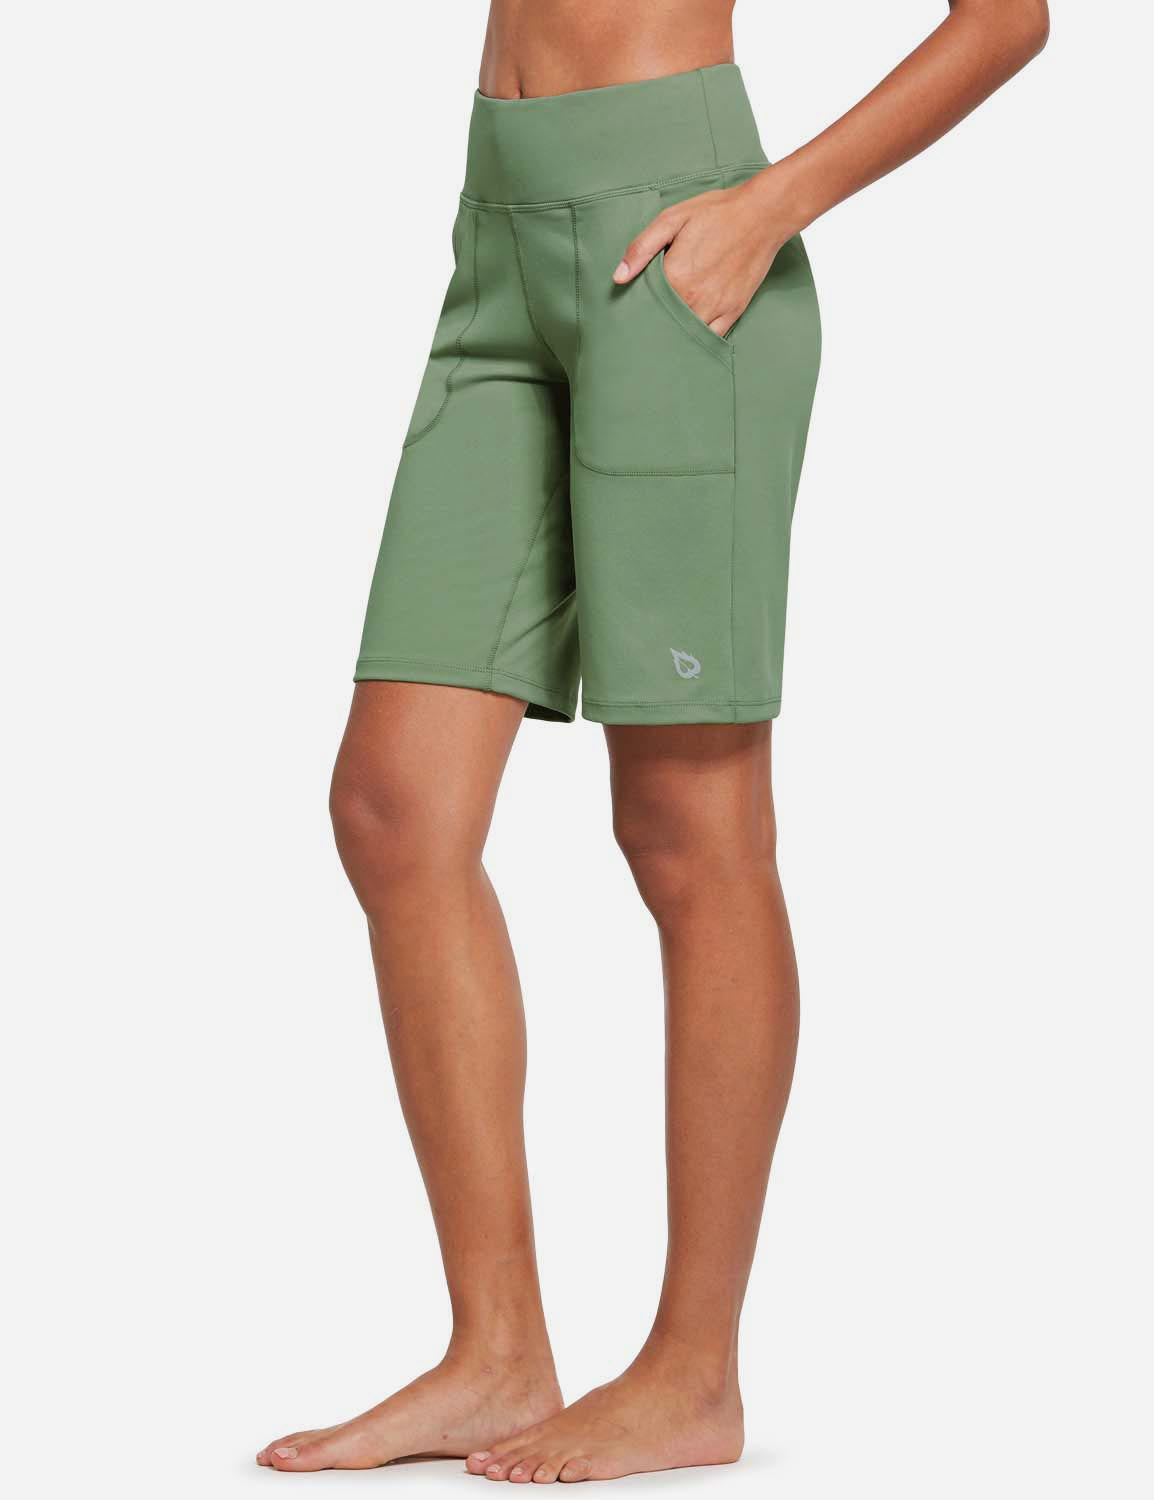 Baleaf Womens Mid Rise Tummy Control Pocketed Lounge Bermuda Shorts Niagara Details Olive Green Side